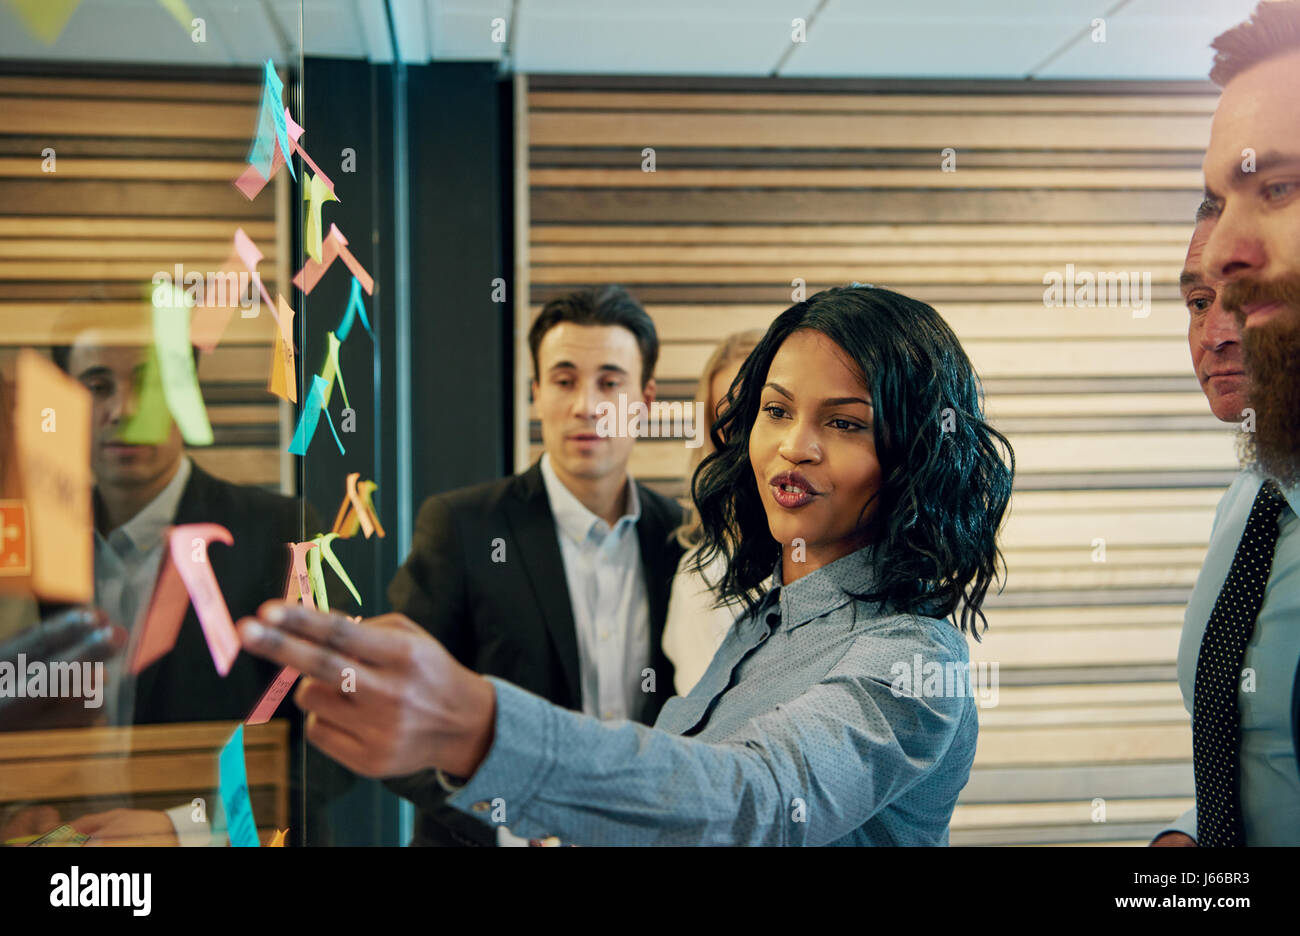 Black business woman in front of mixed business team. Having a standing meeting brainstorming ideas using posters - Stock Image